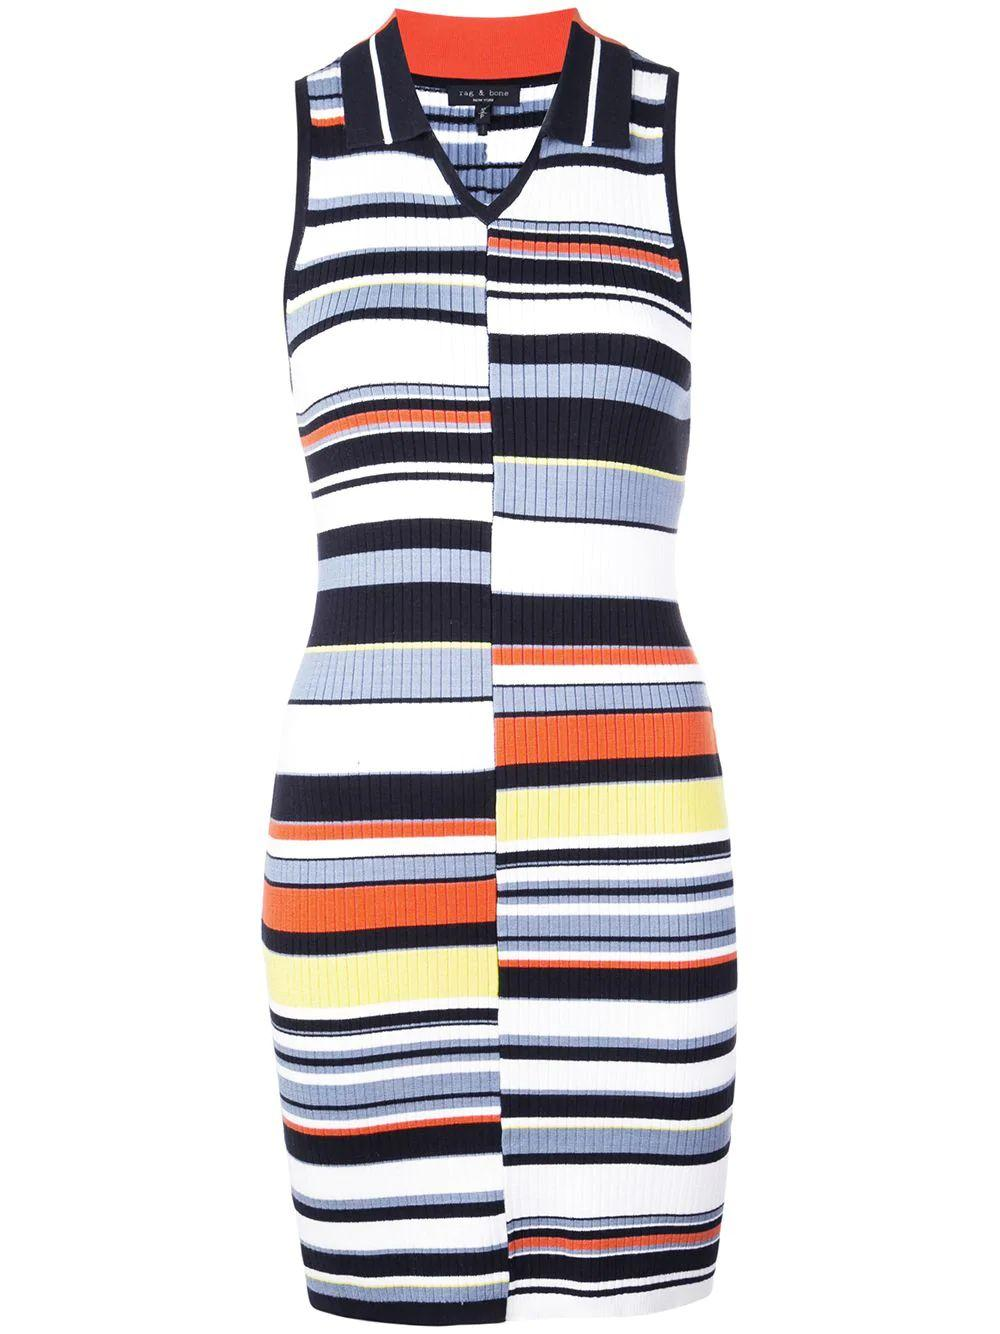 Mason Sleeveless Striped Knit Dress